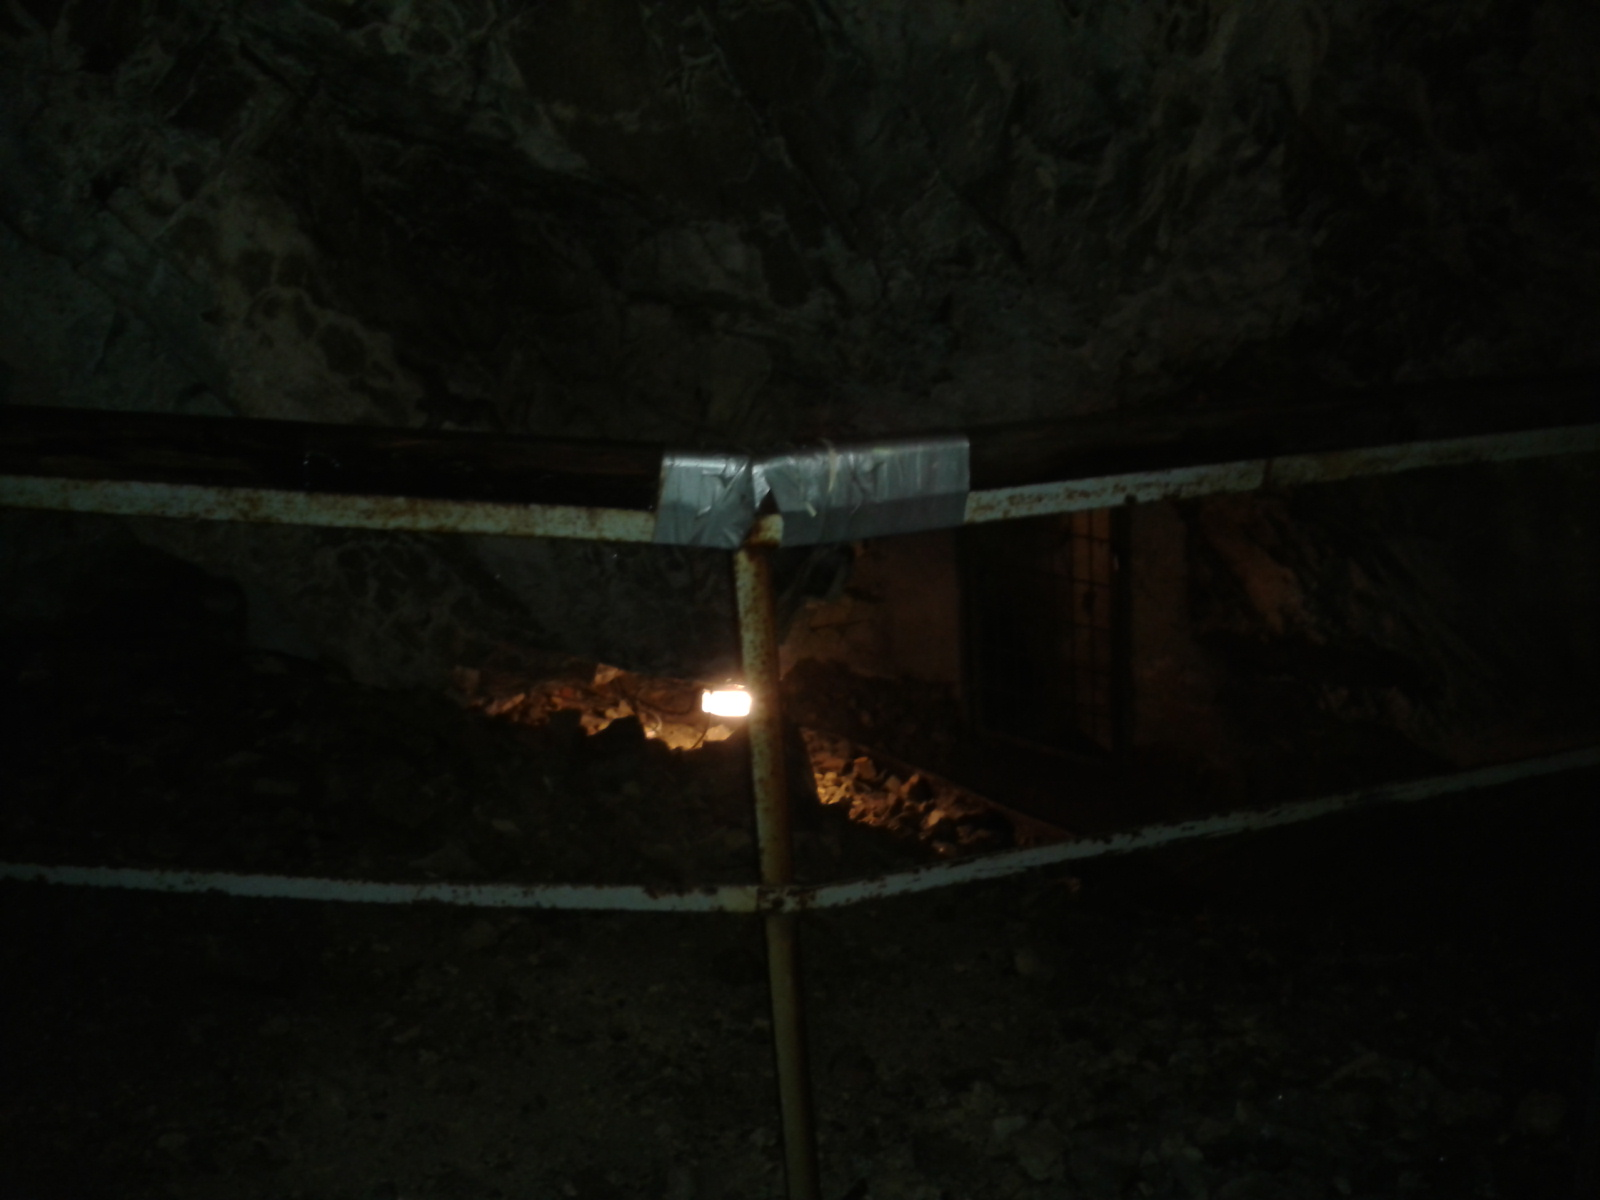 Duct tape holds the world together (Nixhöhle in Niederösterreich)